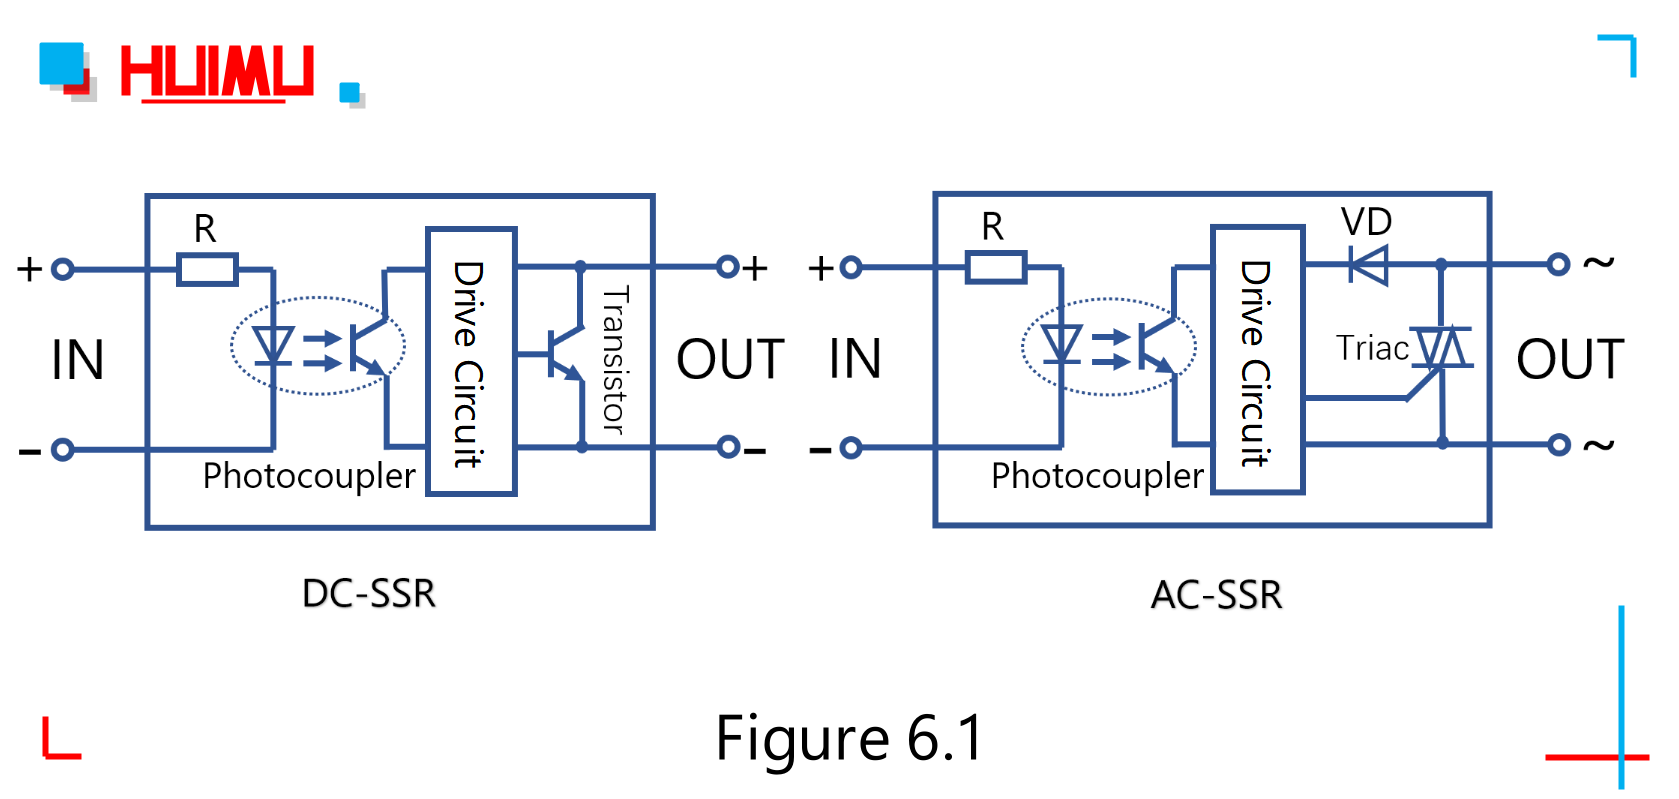 The_internal_equivalent_circuit_diagram_of_solid_state_relays│HUIMULTD